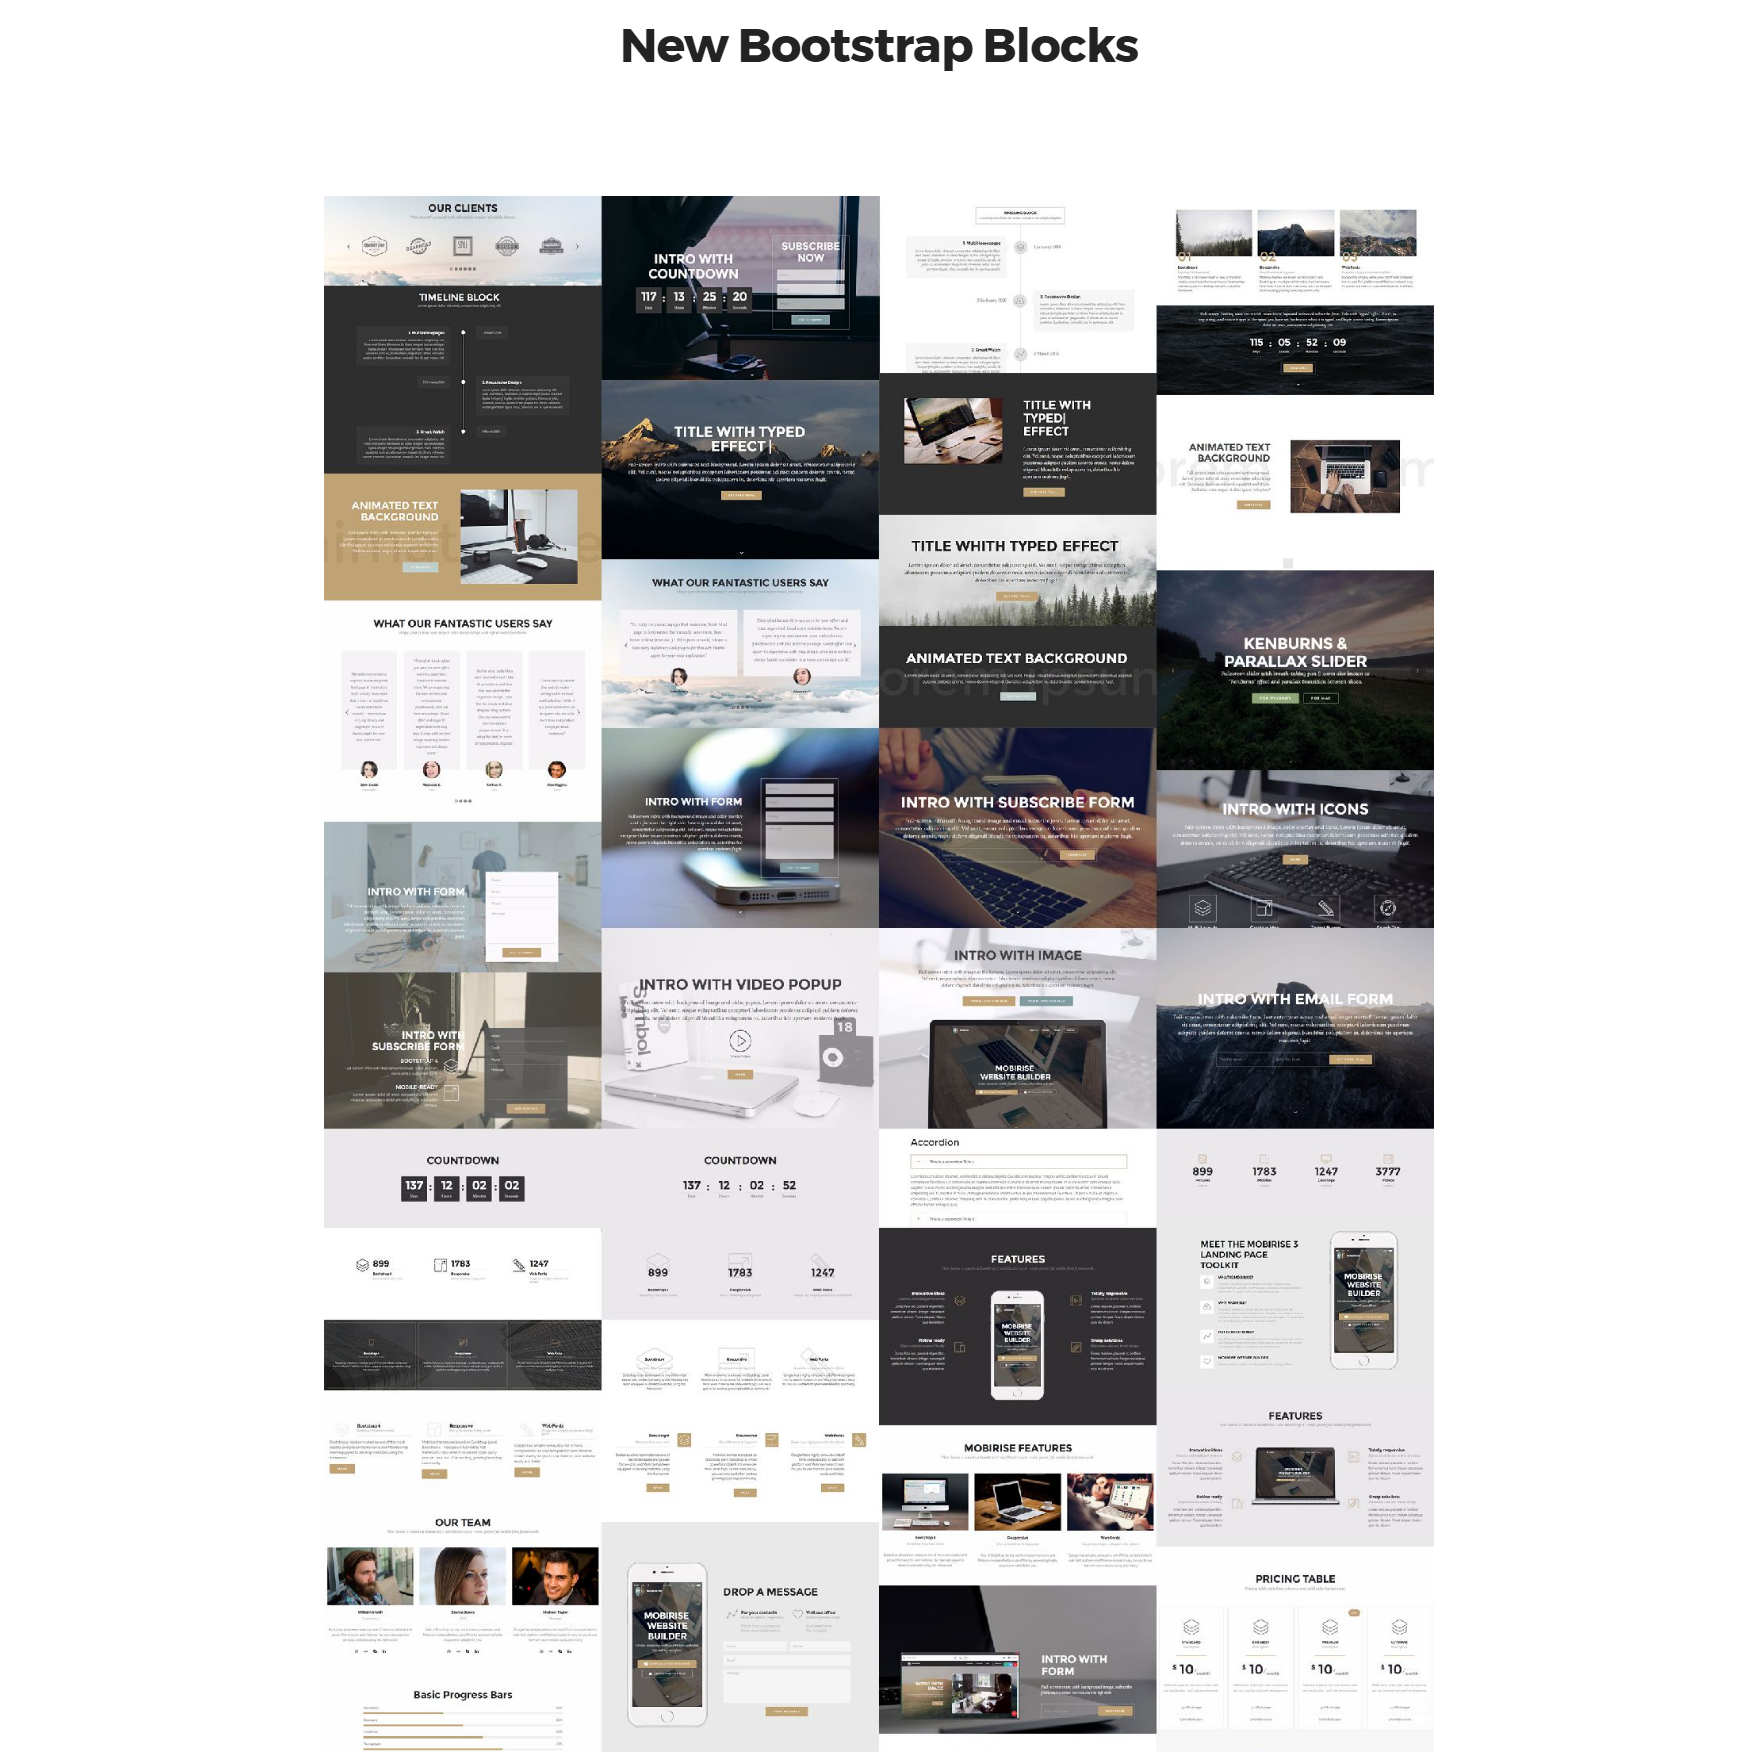 Responsive Bootstrap 4 mobile-friendly blocks Themes